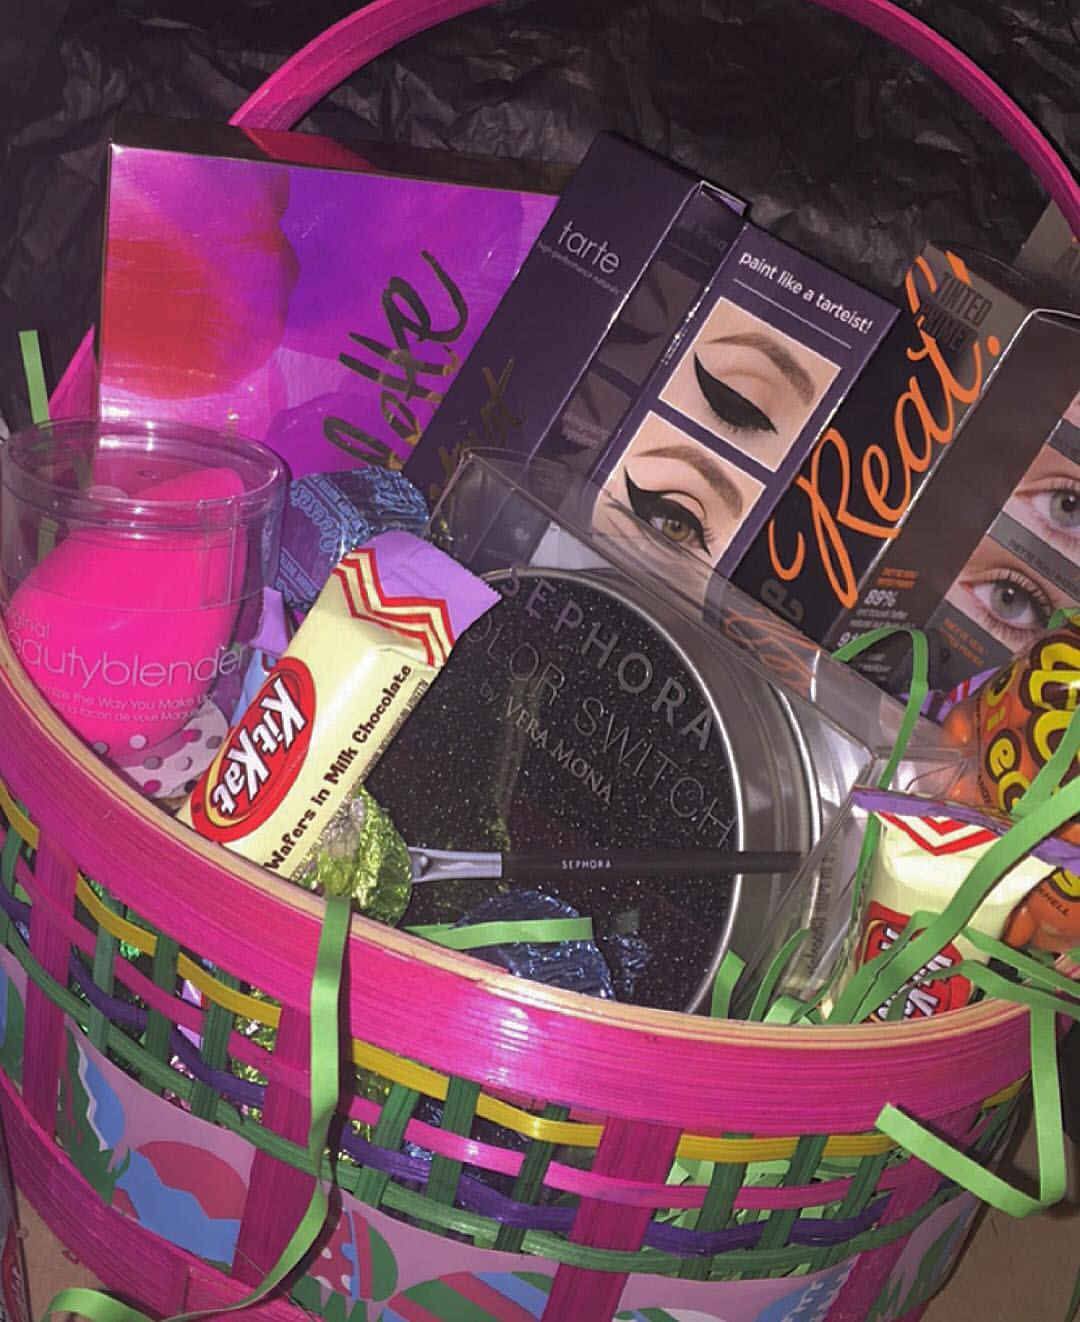 Easter basket ideas for tricky teens easter basket ideas easter easter basket ideas for tricky teens easter basket ideas easter basket ideas for teens easter basket ideas for boys easter basket ideas for girls negle Choice Image